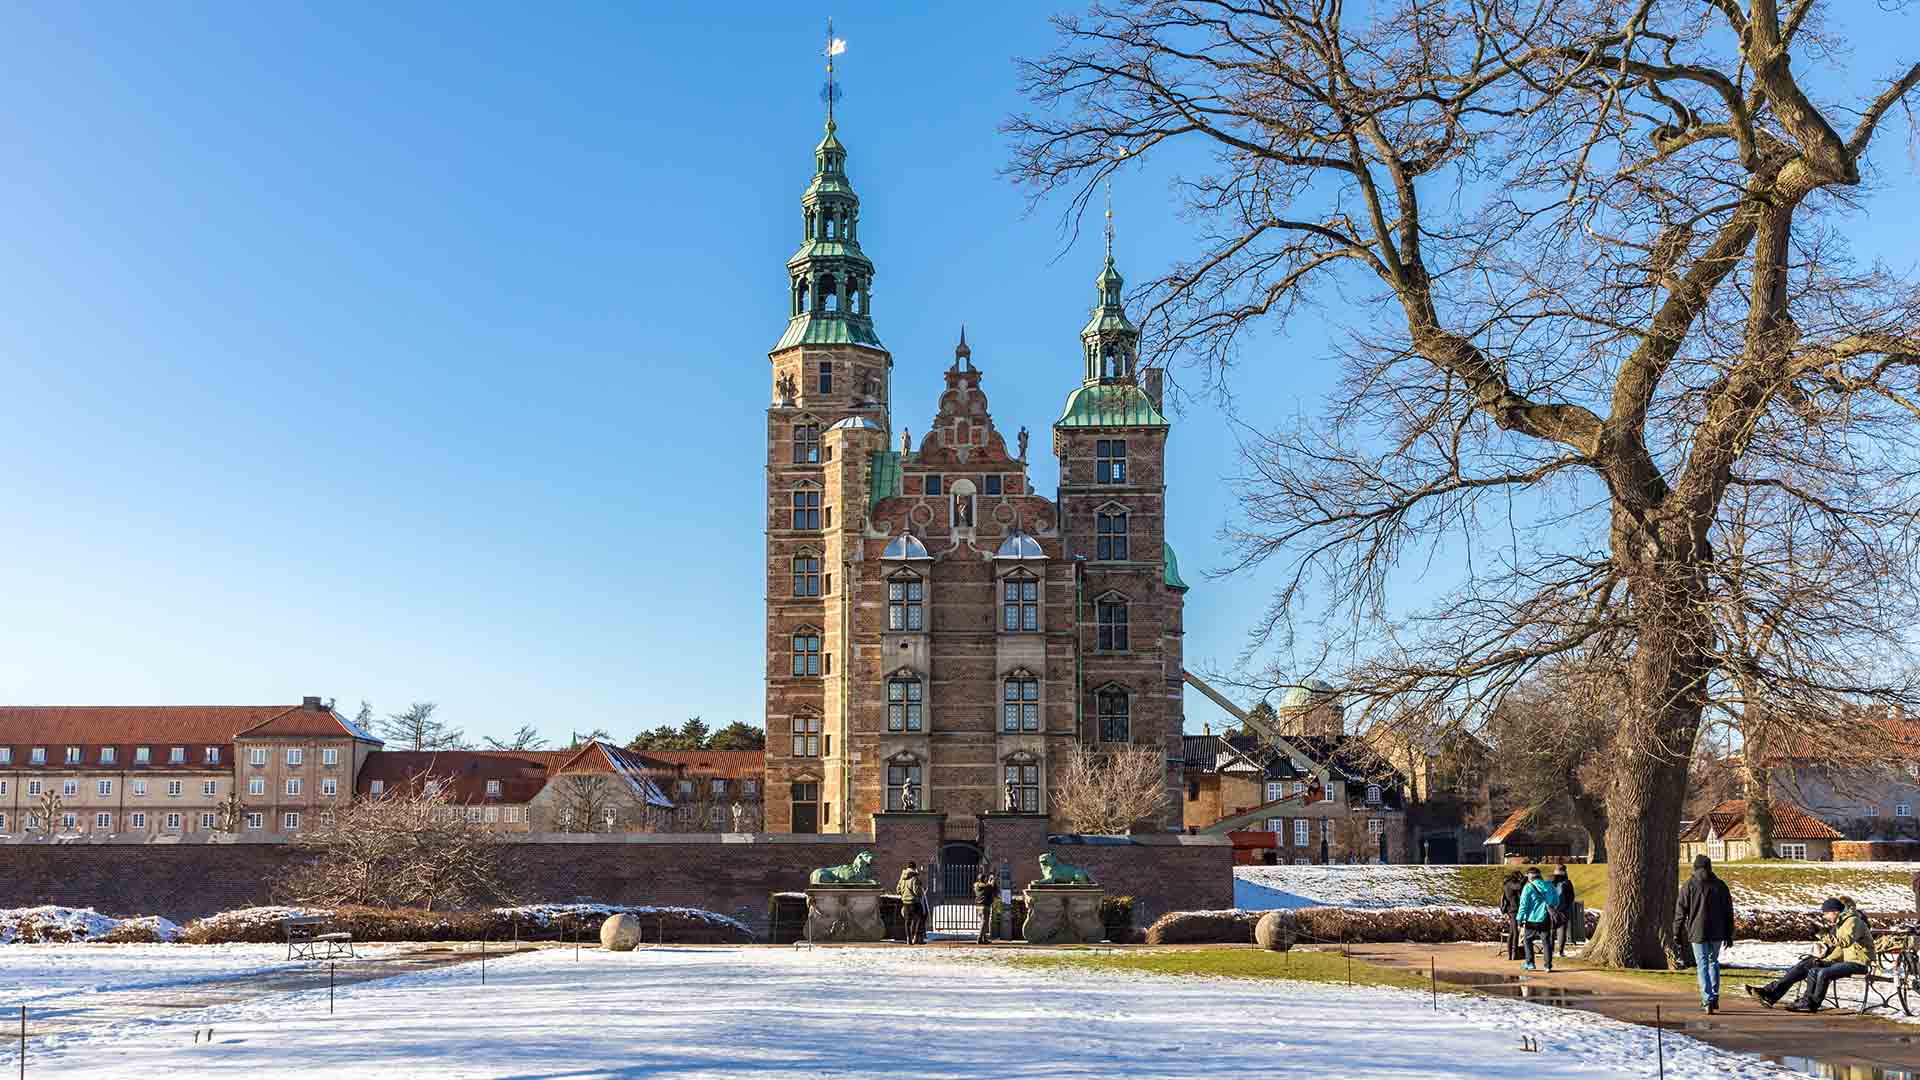 rosenborg castle under the snow